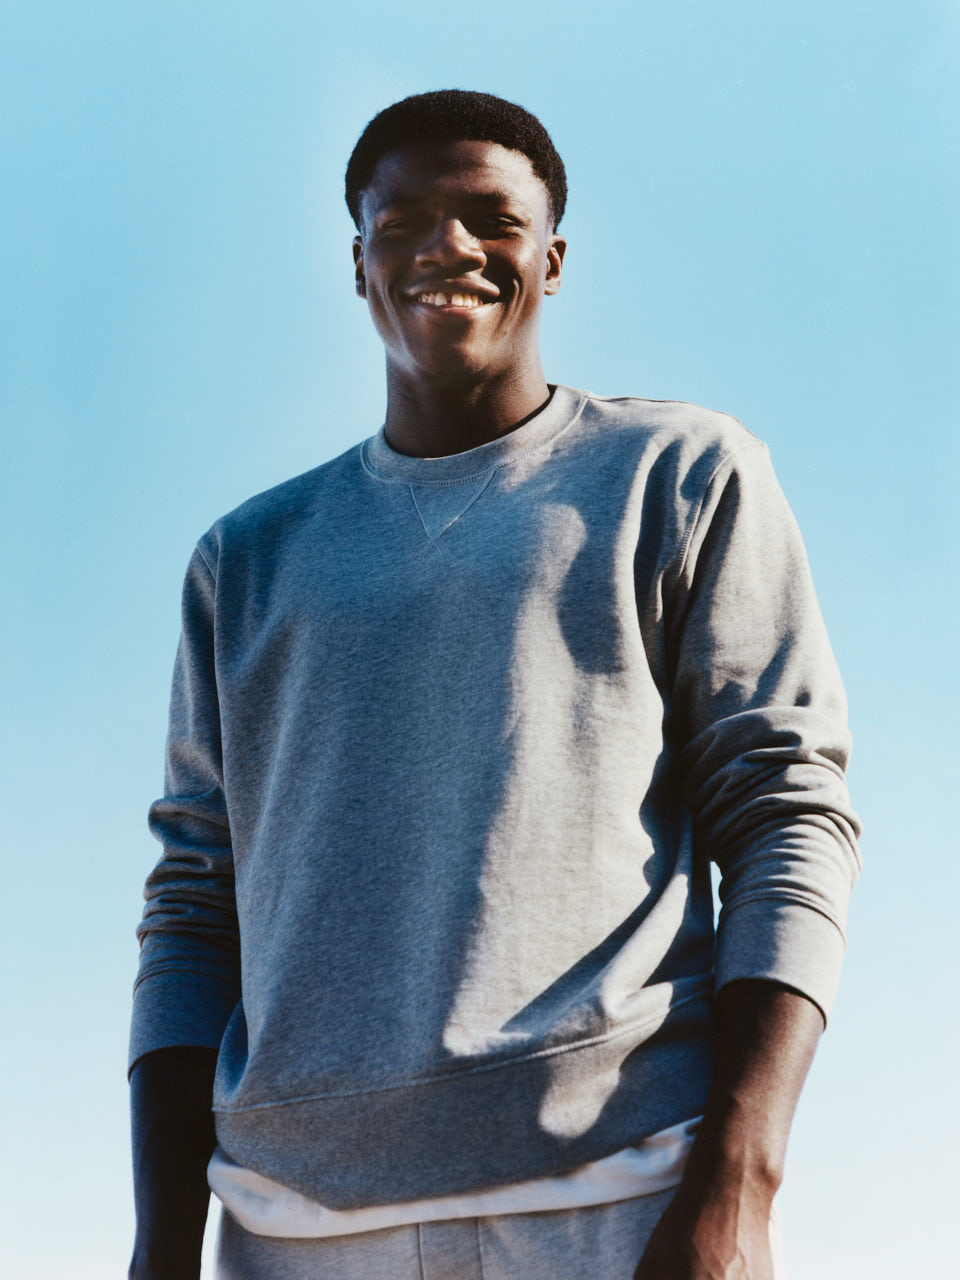 Male model smiling wearing a grey sweatshirt